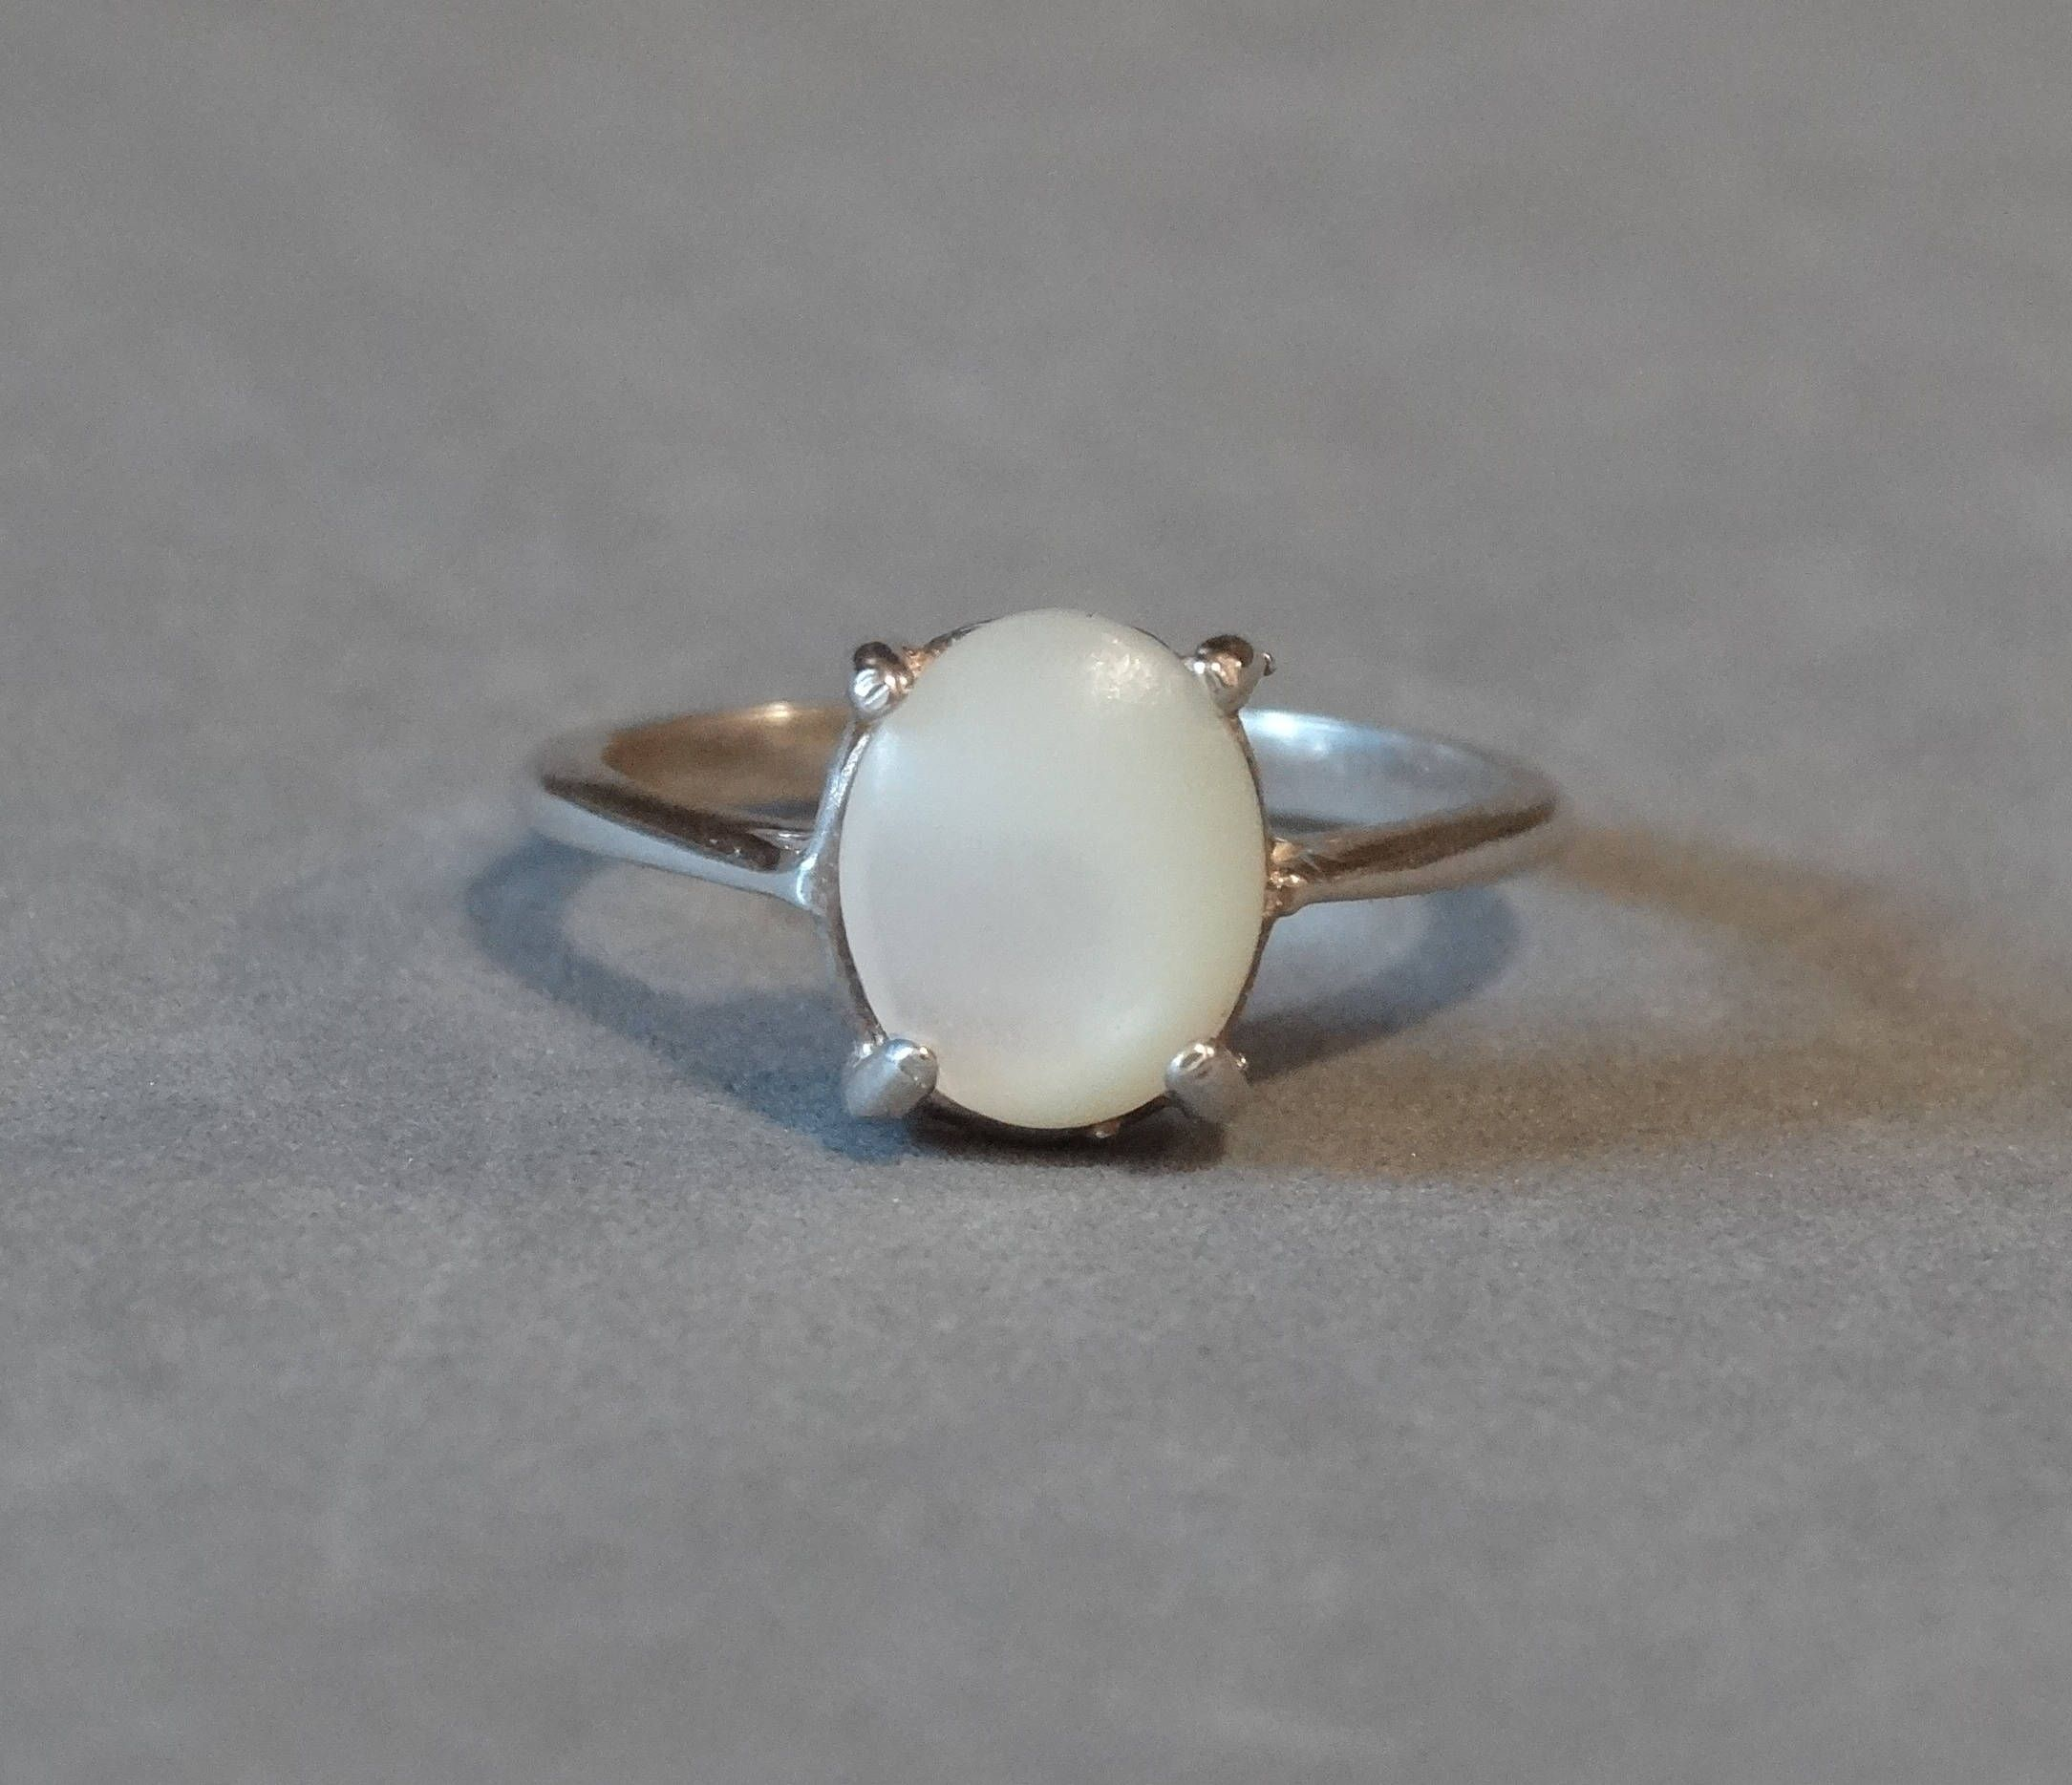 Find This Pin And More On Jewelry Lovers Galore Board Vintage Mother Of  Pearl